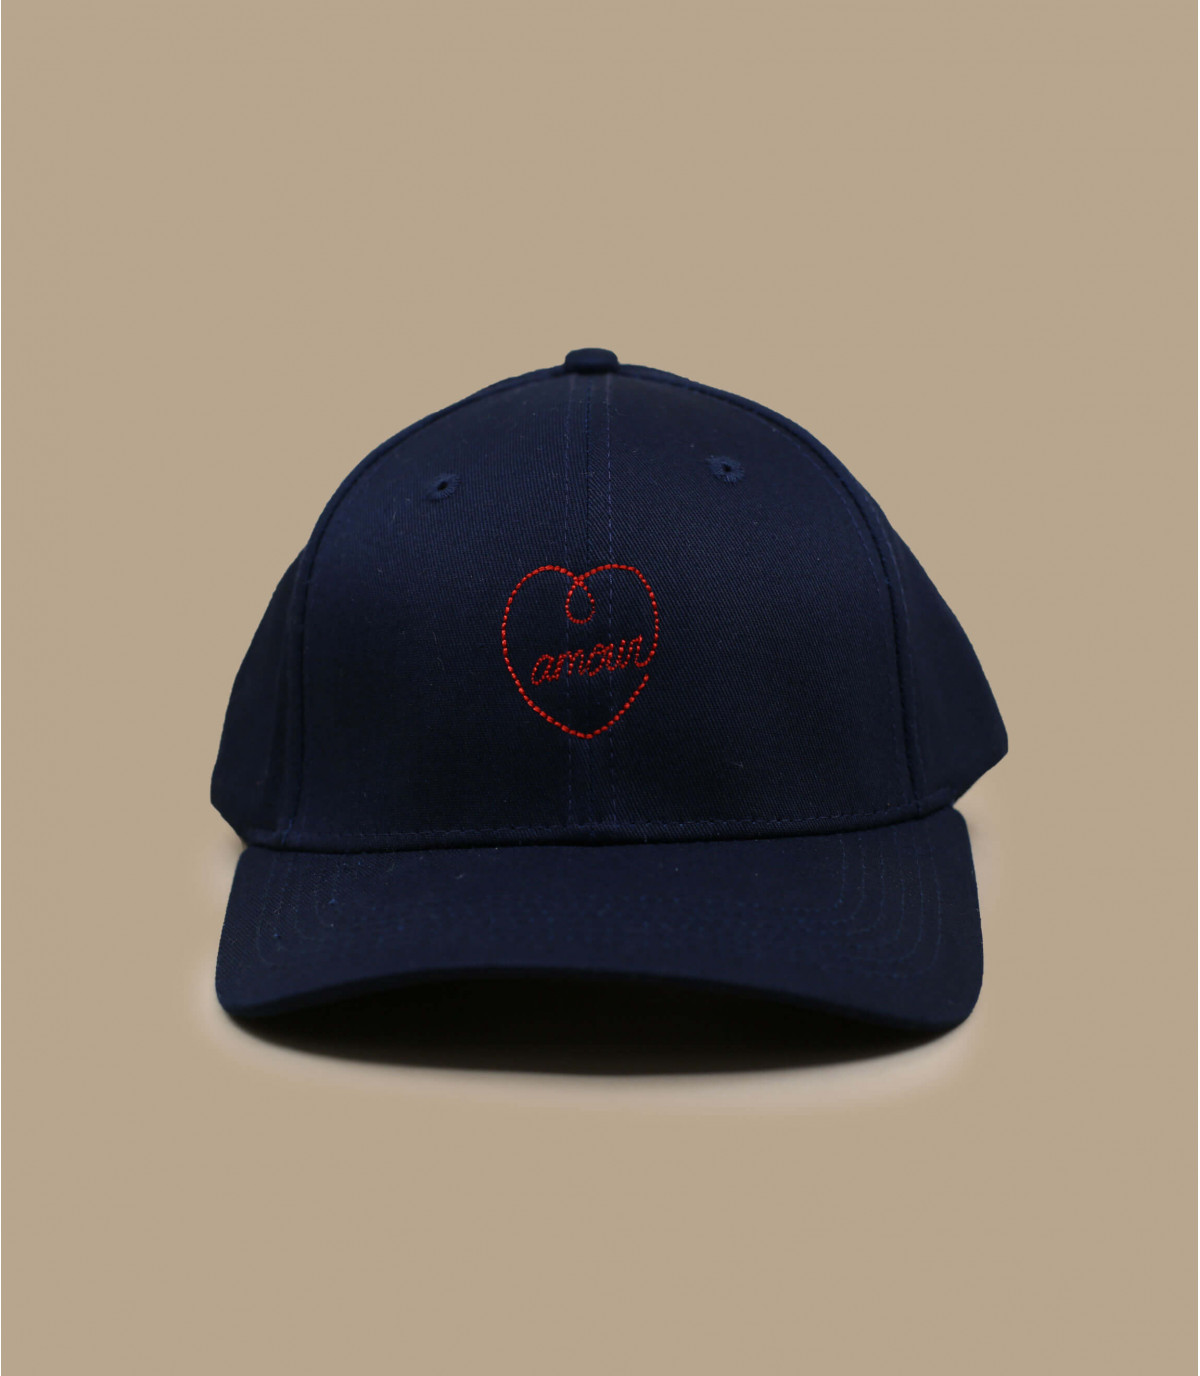 Dettagli Curve Amour navy red - image 2